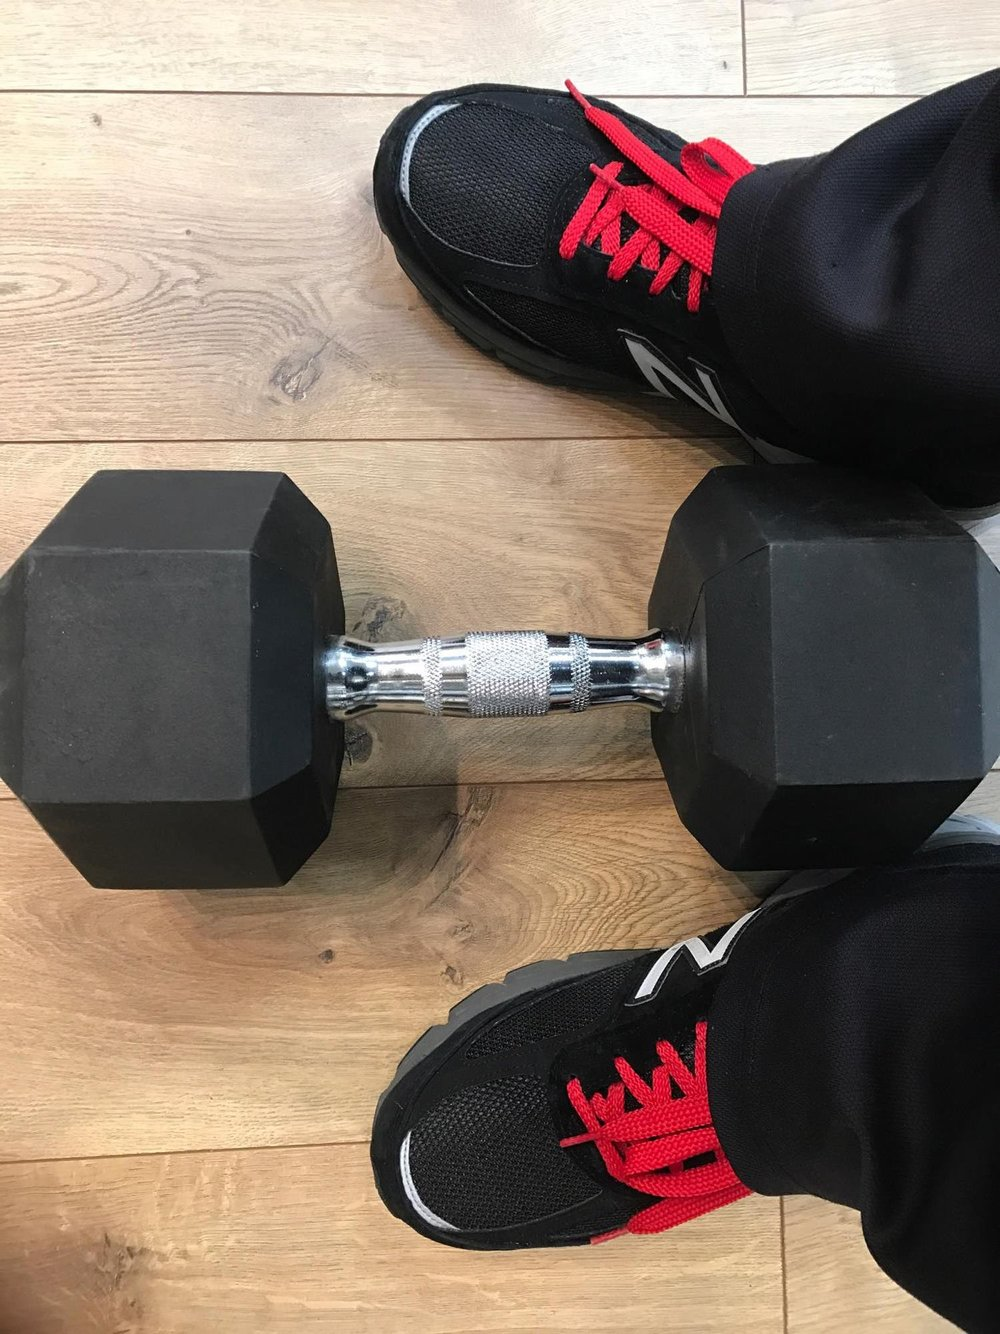 Right Shoes and Weight